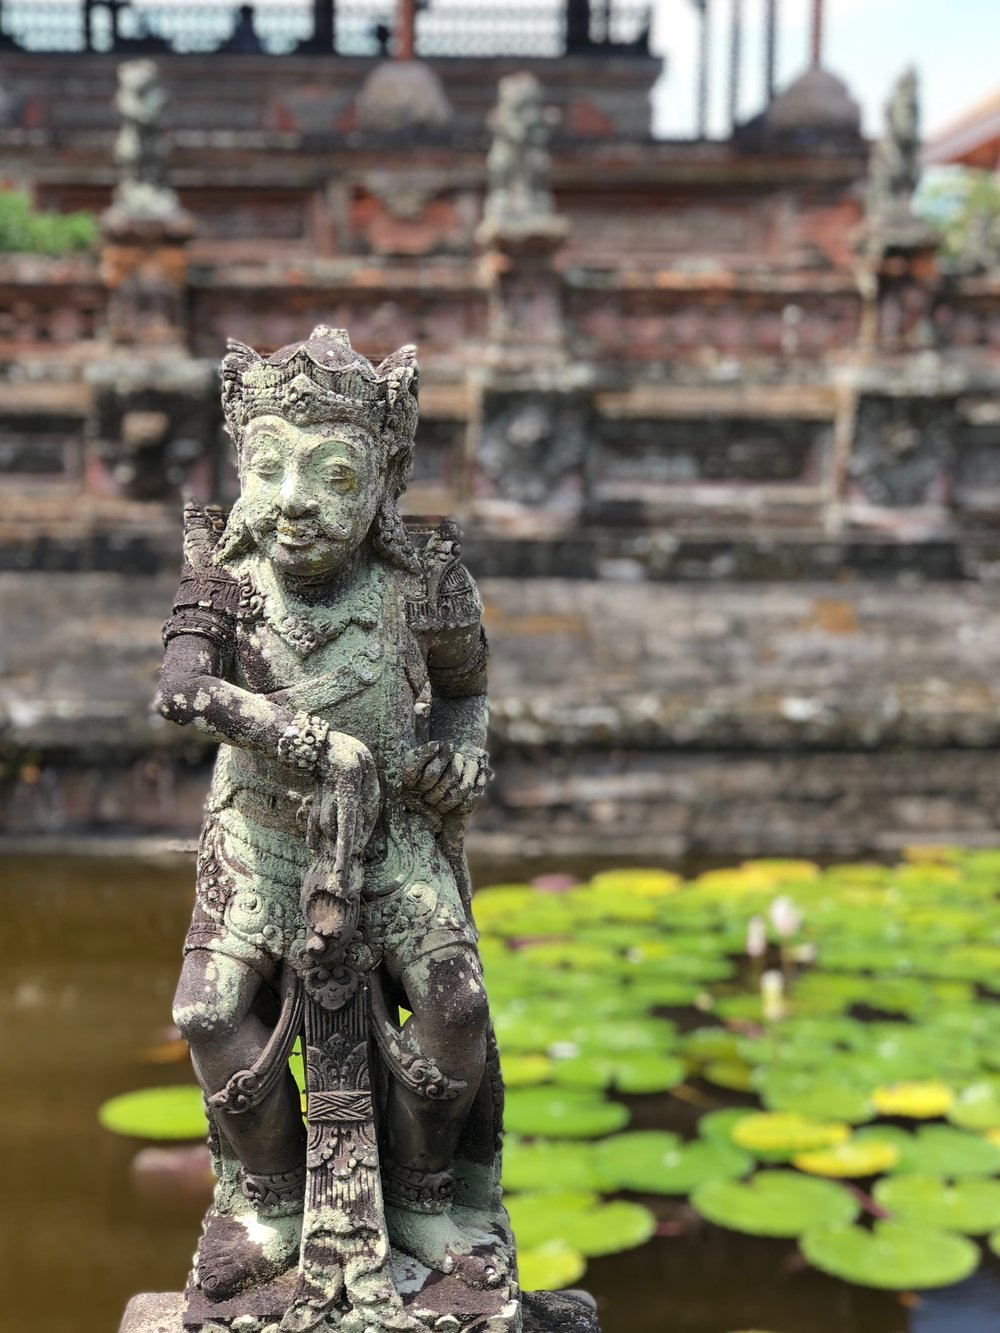 One of the guardians of Klungkung. Too bad they couldn't have saved the local kingdom from colonization by the Dutch